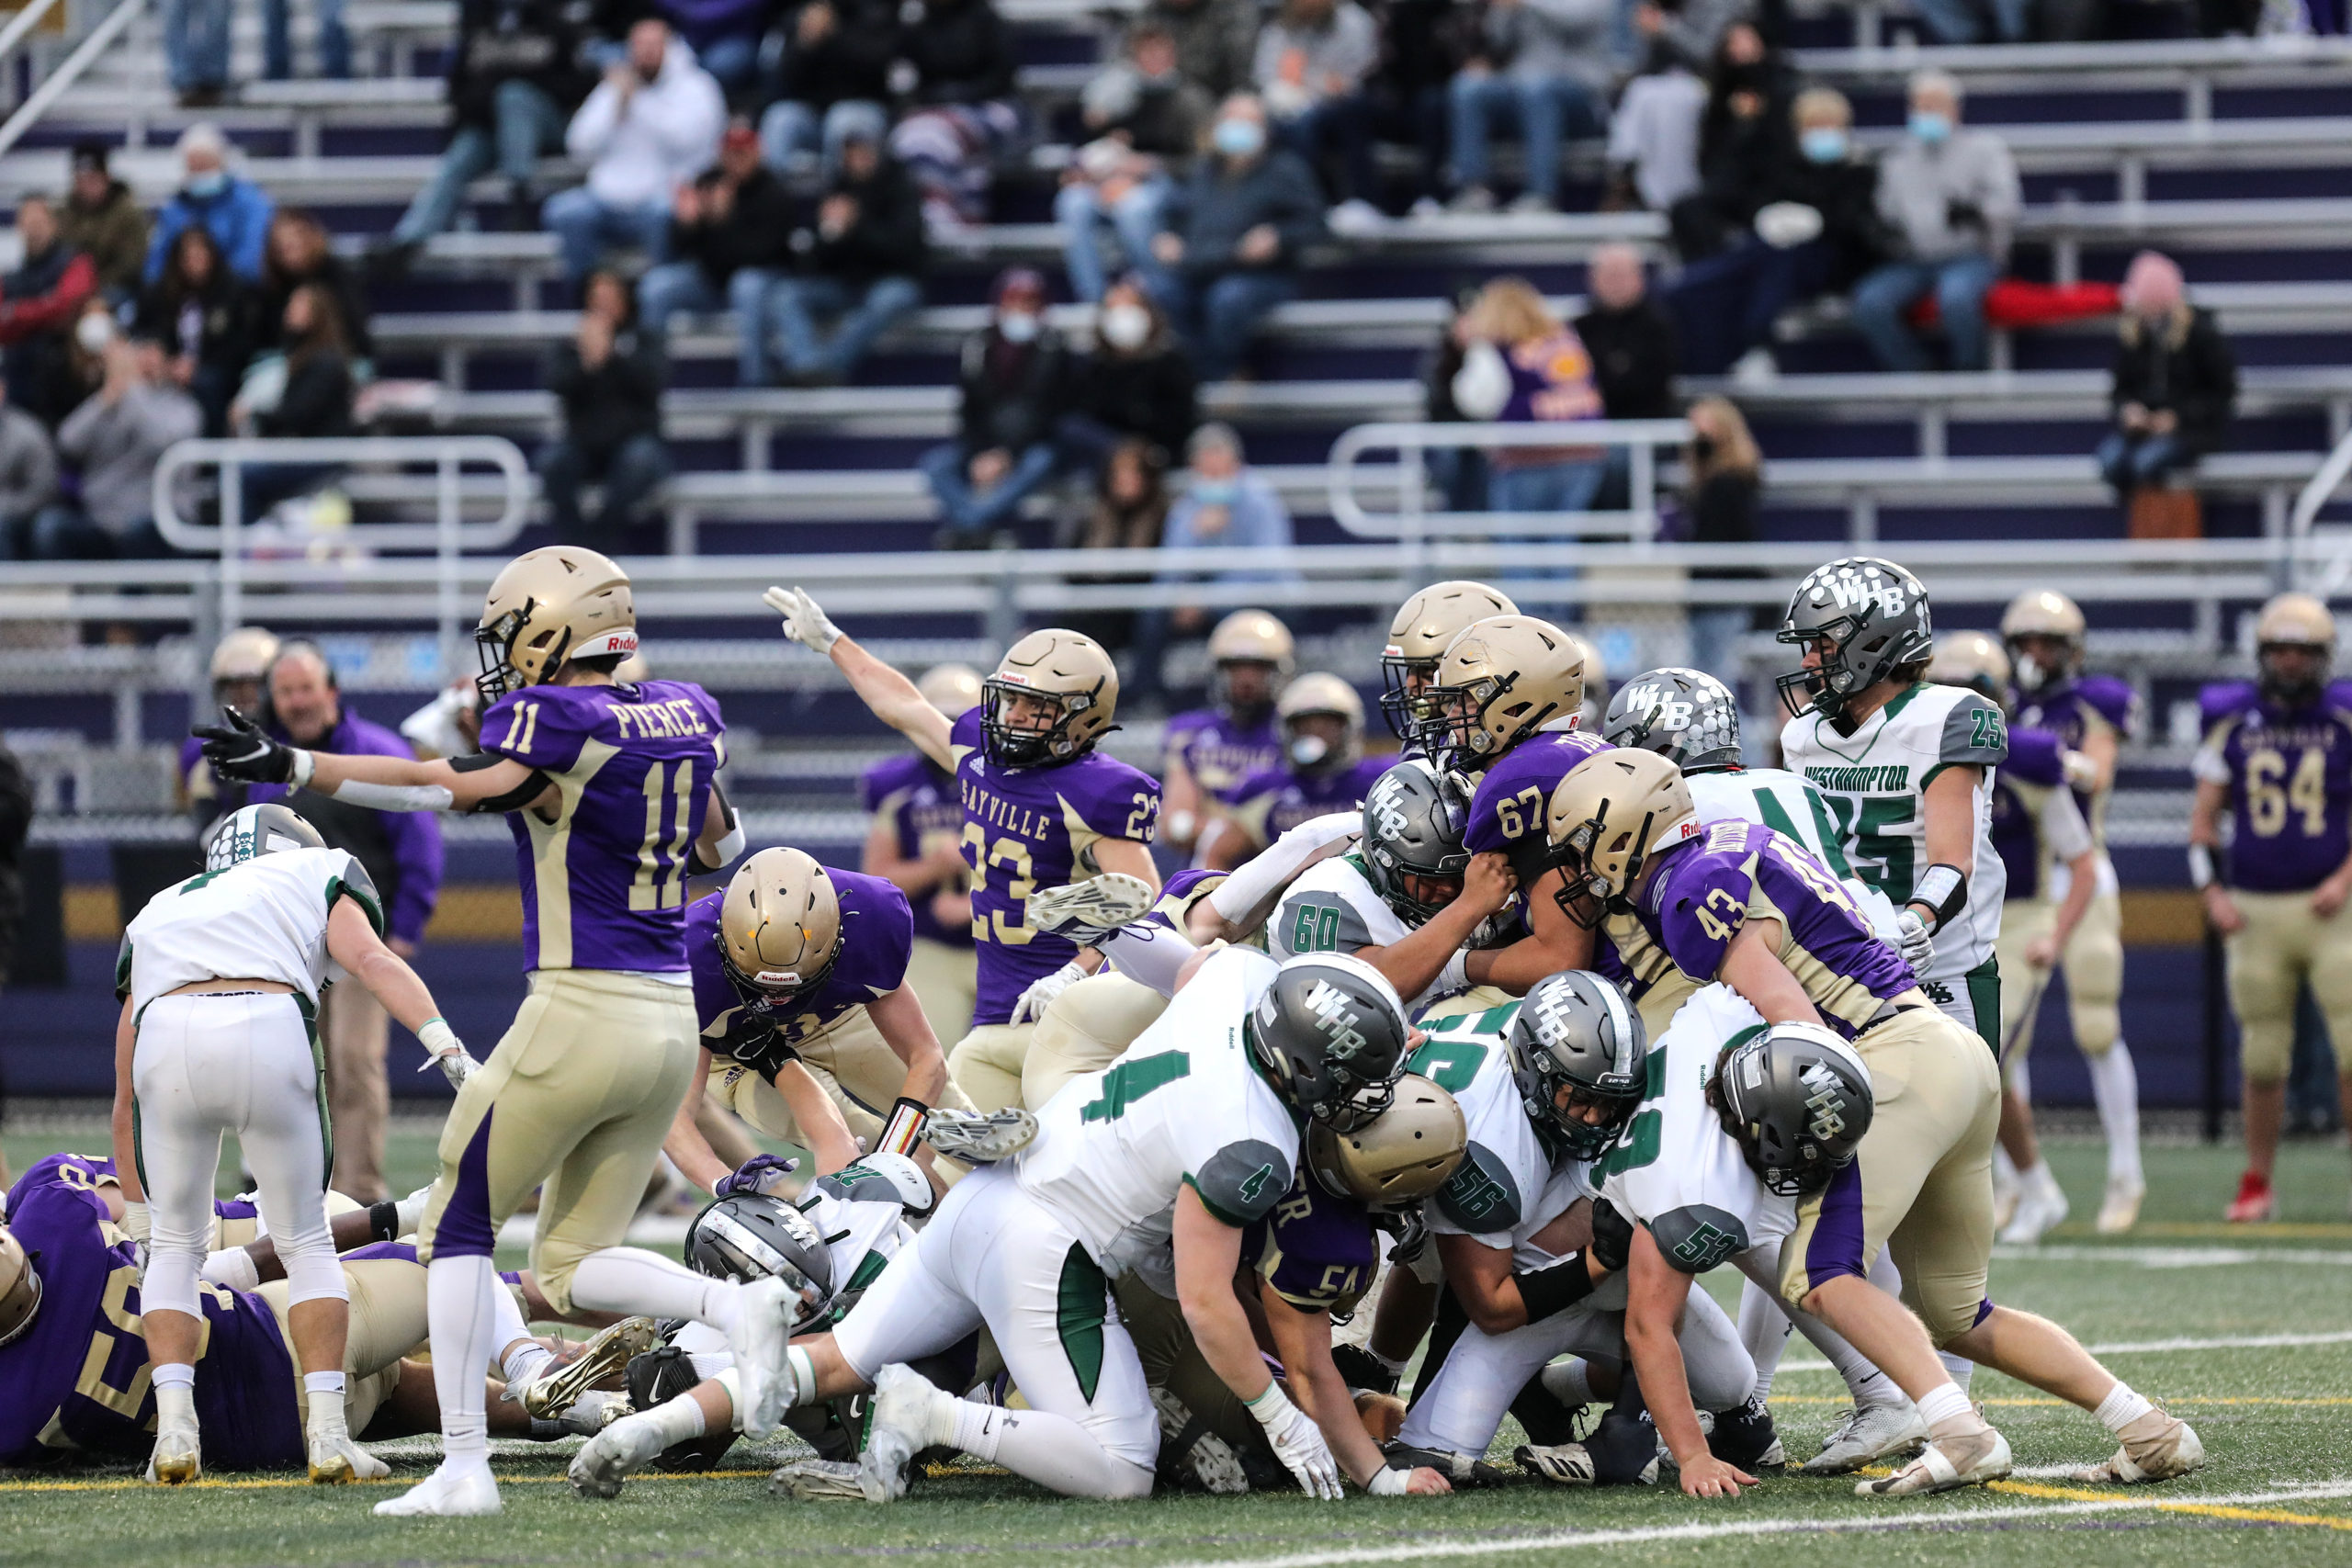 Westhampton Beach and Sayville football players pile up on a loose ball.